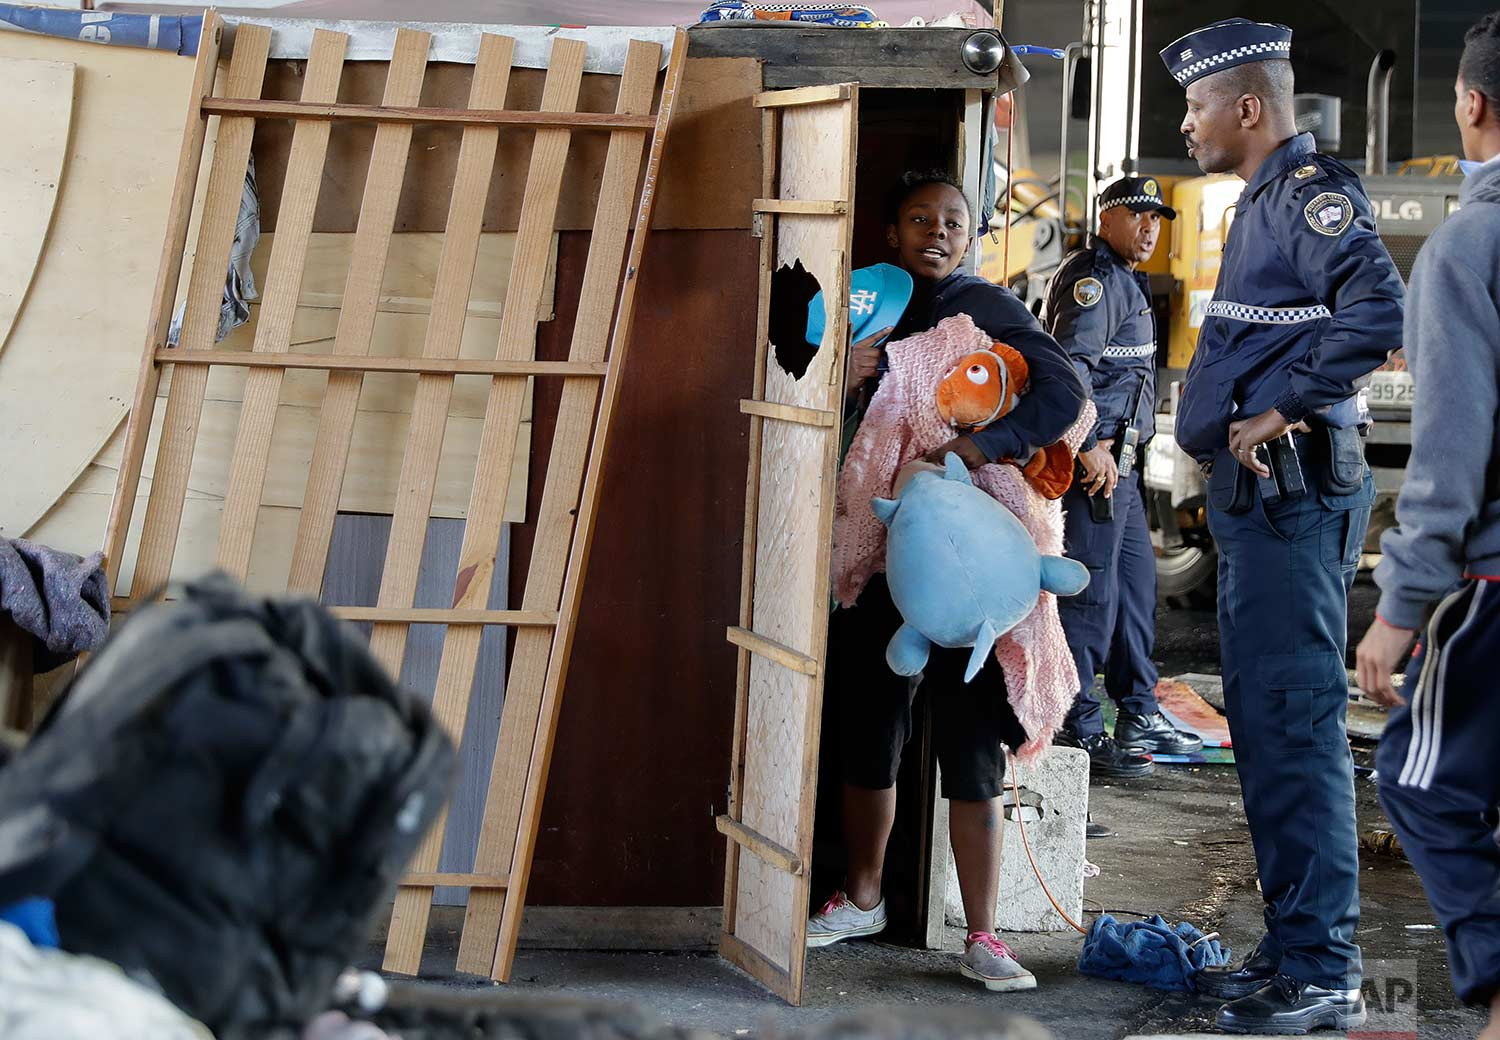 A police officer stands by as a woman carries her belongings during an eviction of people living in shacks beneath an overpass, in Sao Paulo, Brazil, Saturday, July 29, 2017. (AP Photo/Andre Penner)